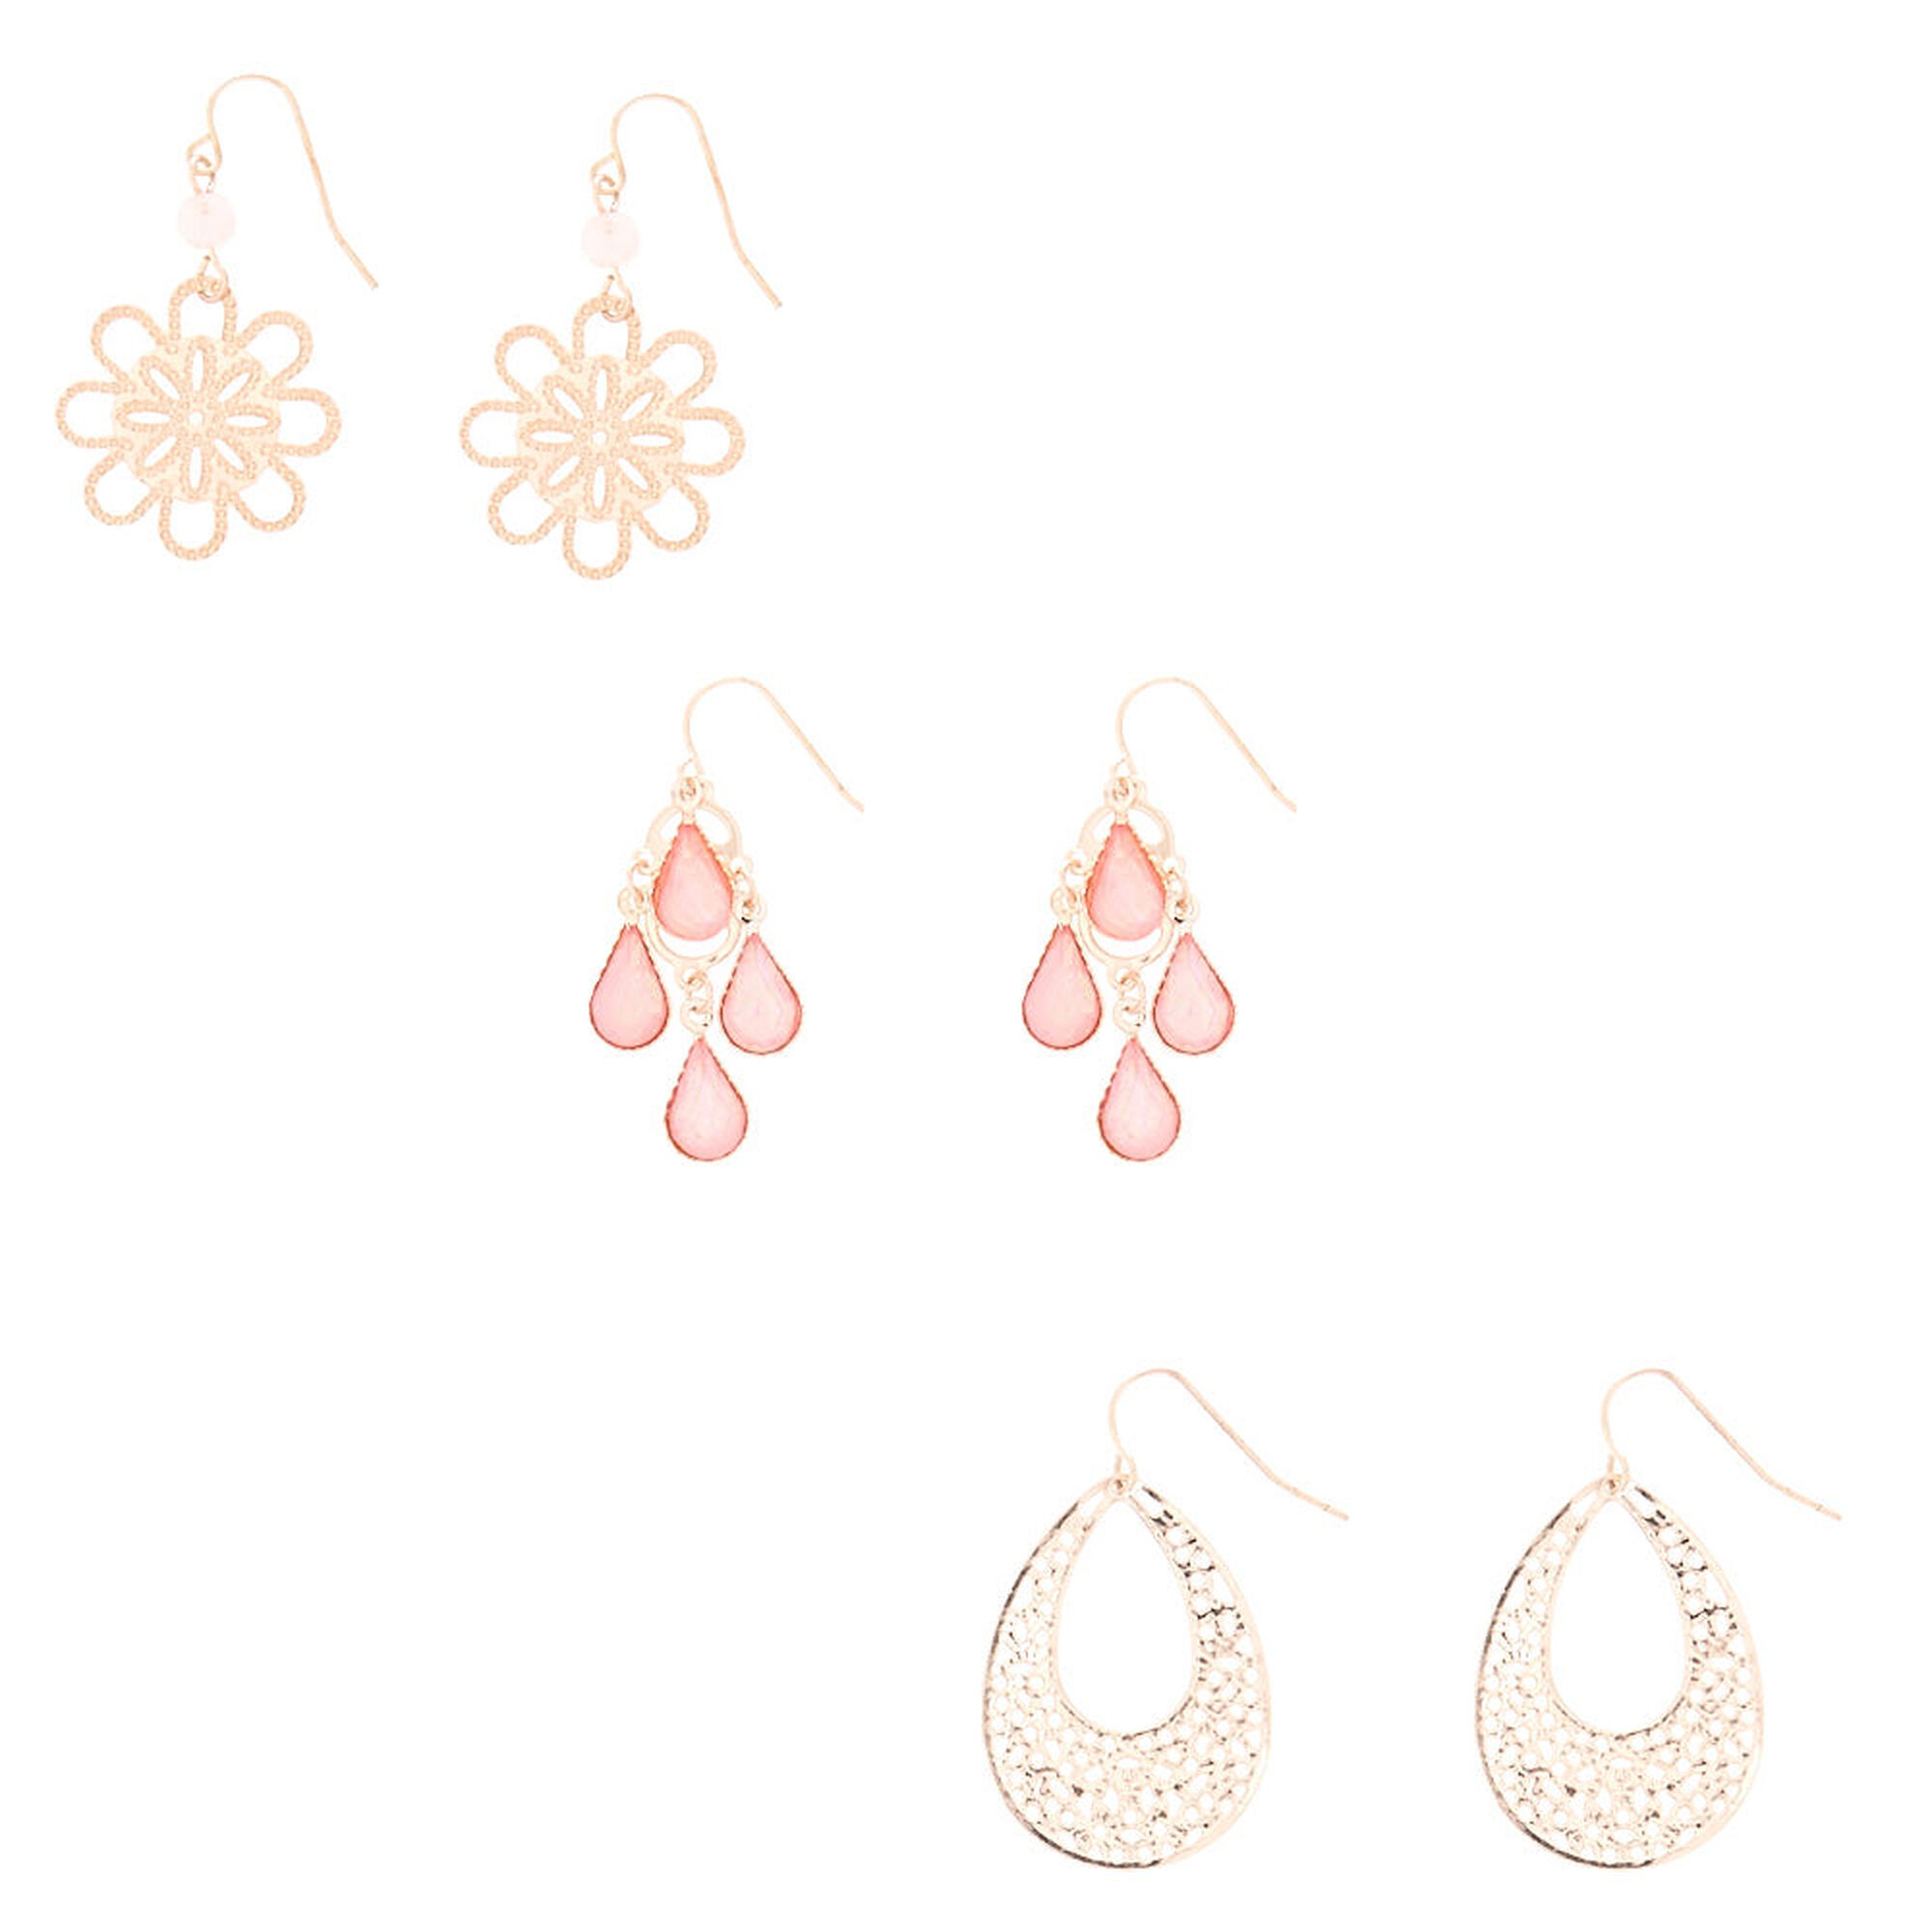 diamond earrings web classic delicate minimal oro vrai studs and trillion products rose p modern gold